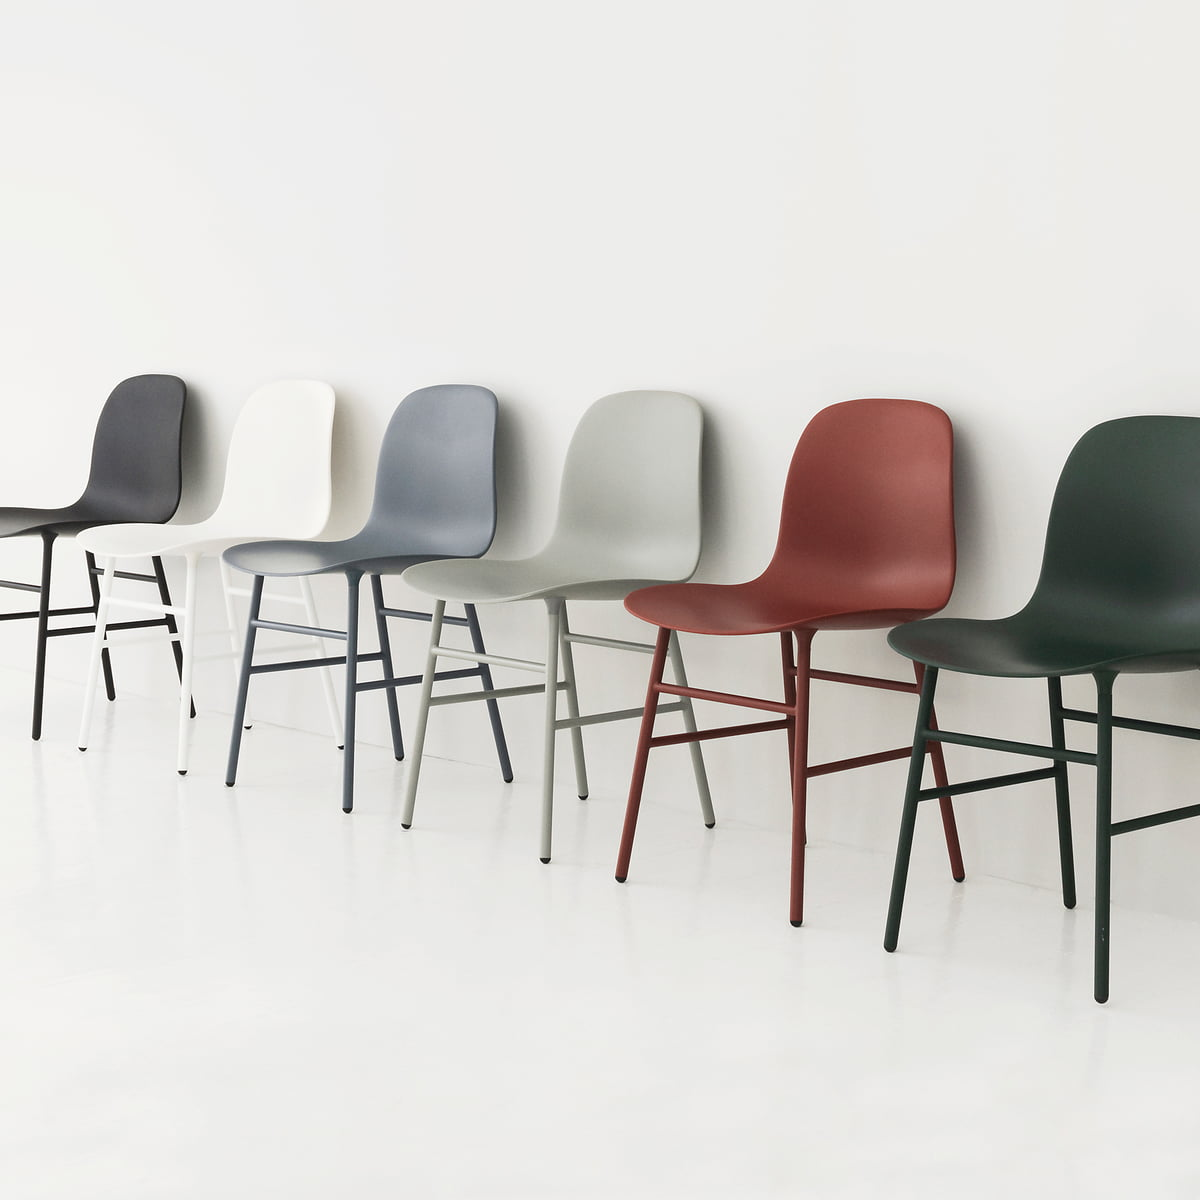 Form Chair Steel Legs By Normann Copenhagen